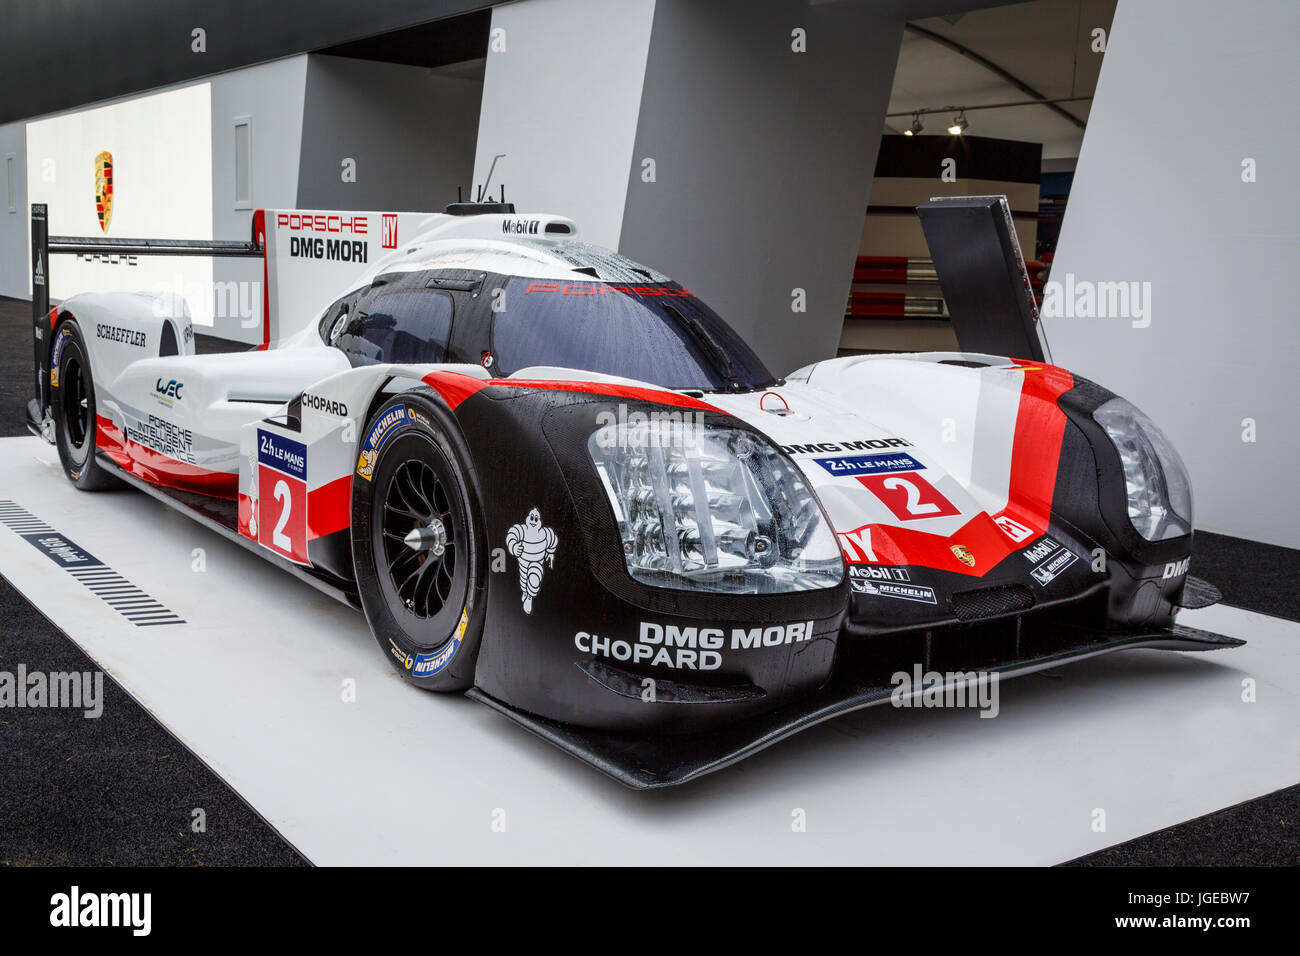 Porsche 919 Hybrid LMP1 Le Mans race winner on display at the 2017 Goodwood  Festival of Speed, Sussex, UK.